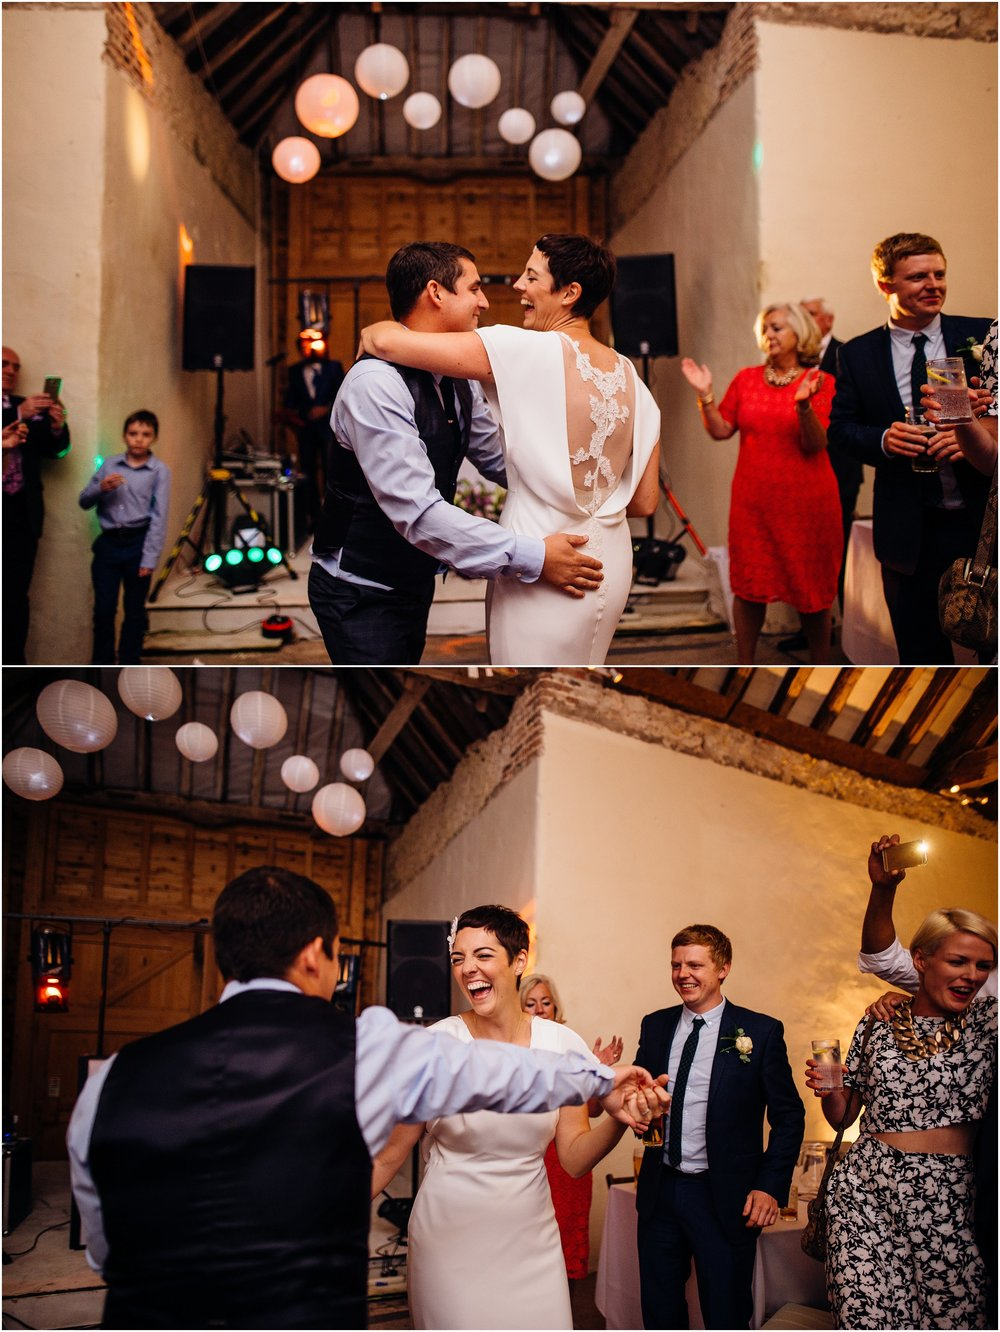 ALTERNATIVE STYLISH UK BARN WEDDING-ISLE OF WIGHT_0078.jpg